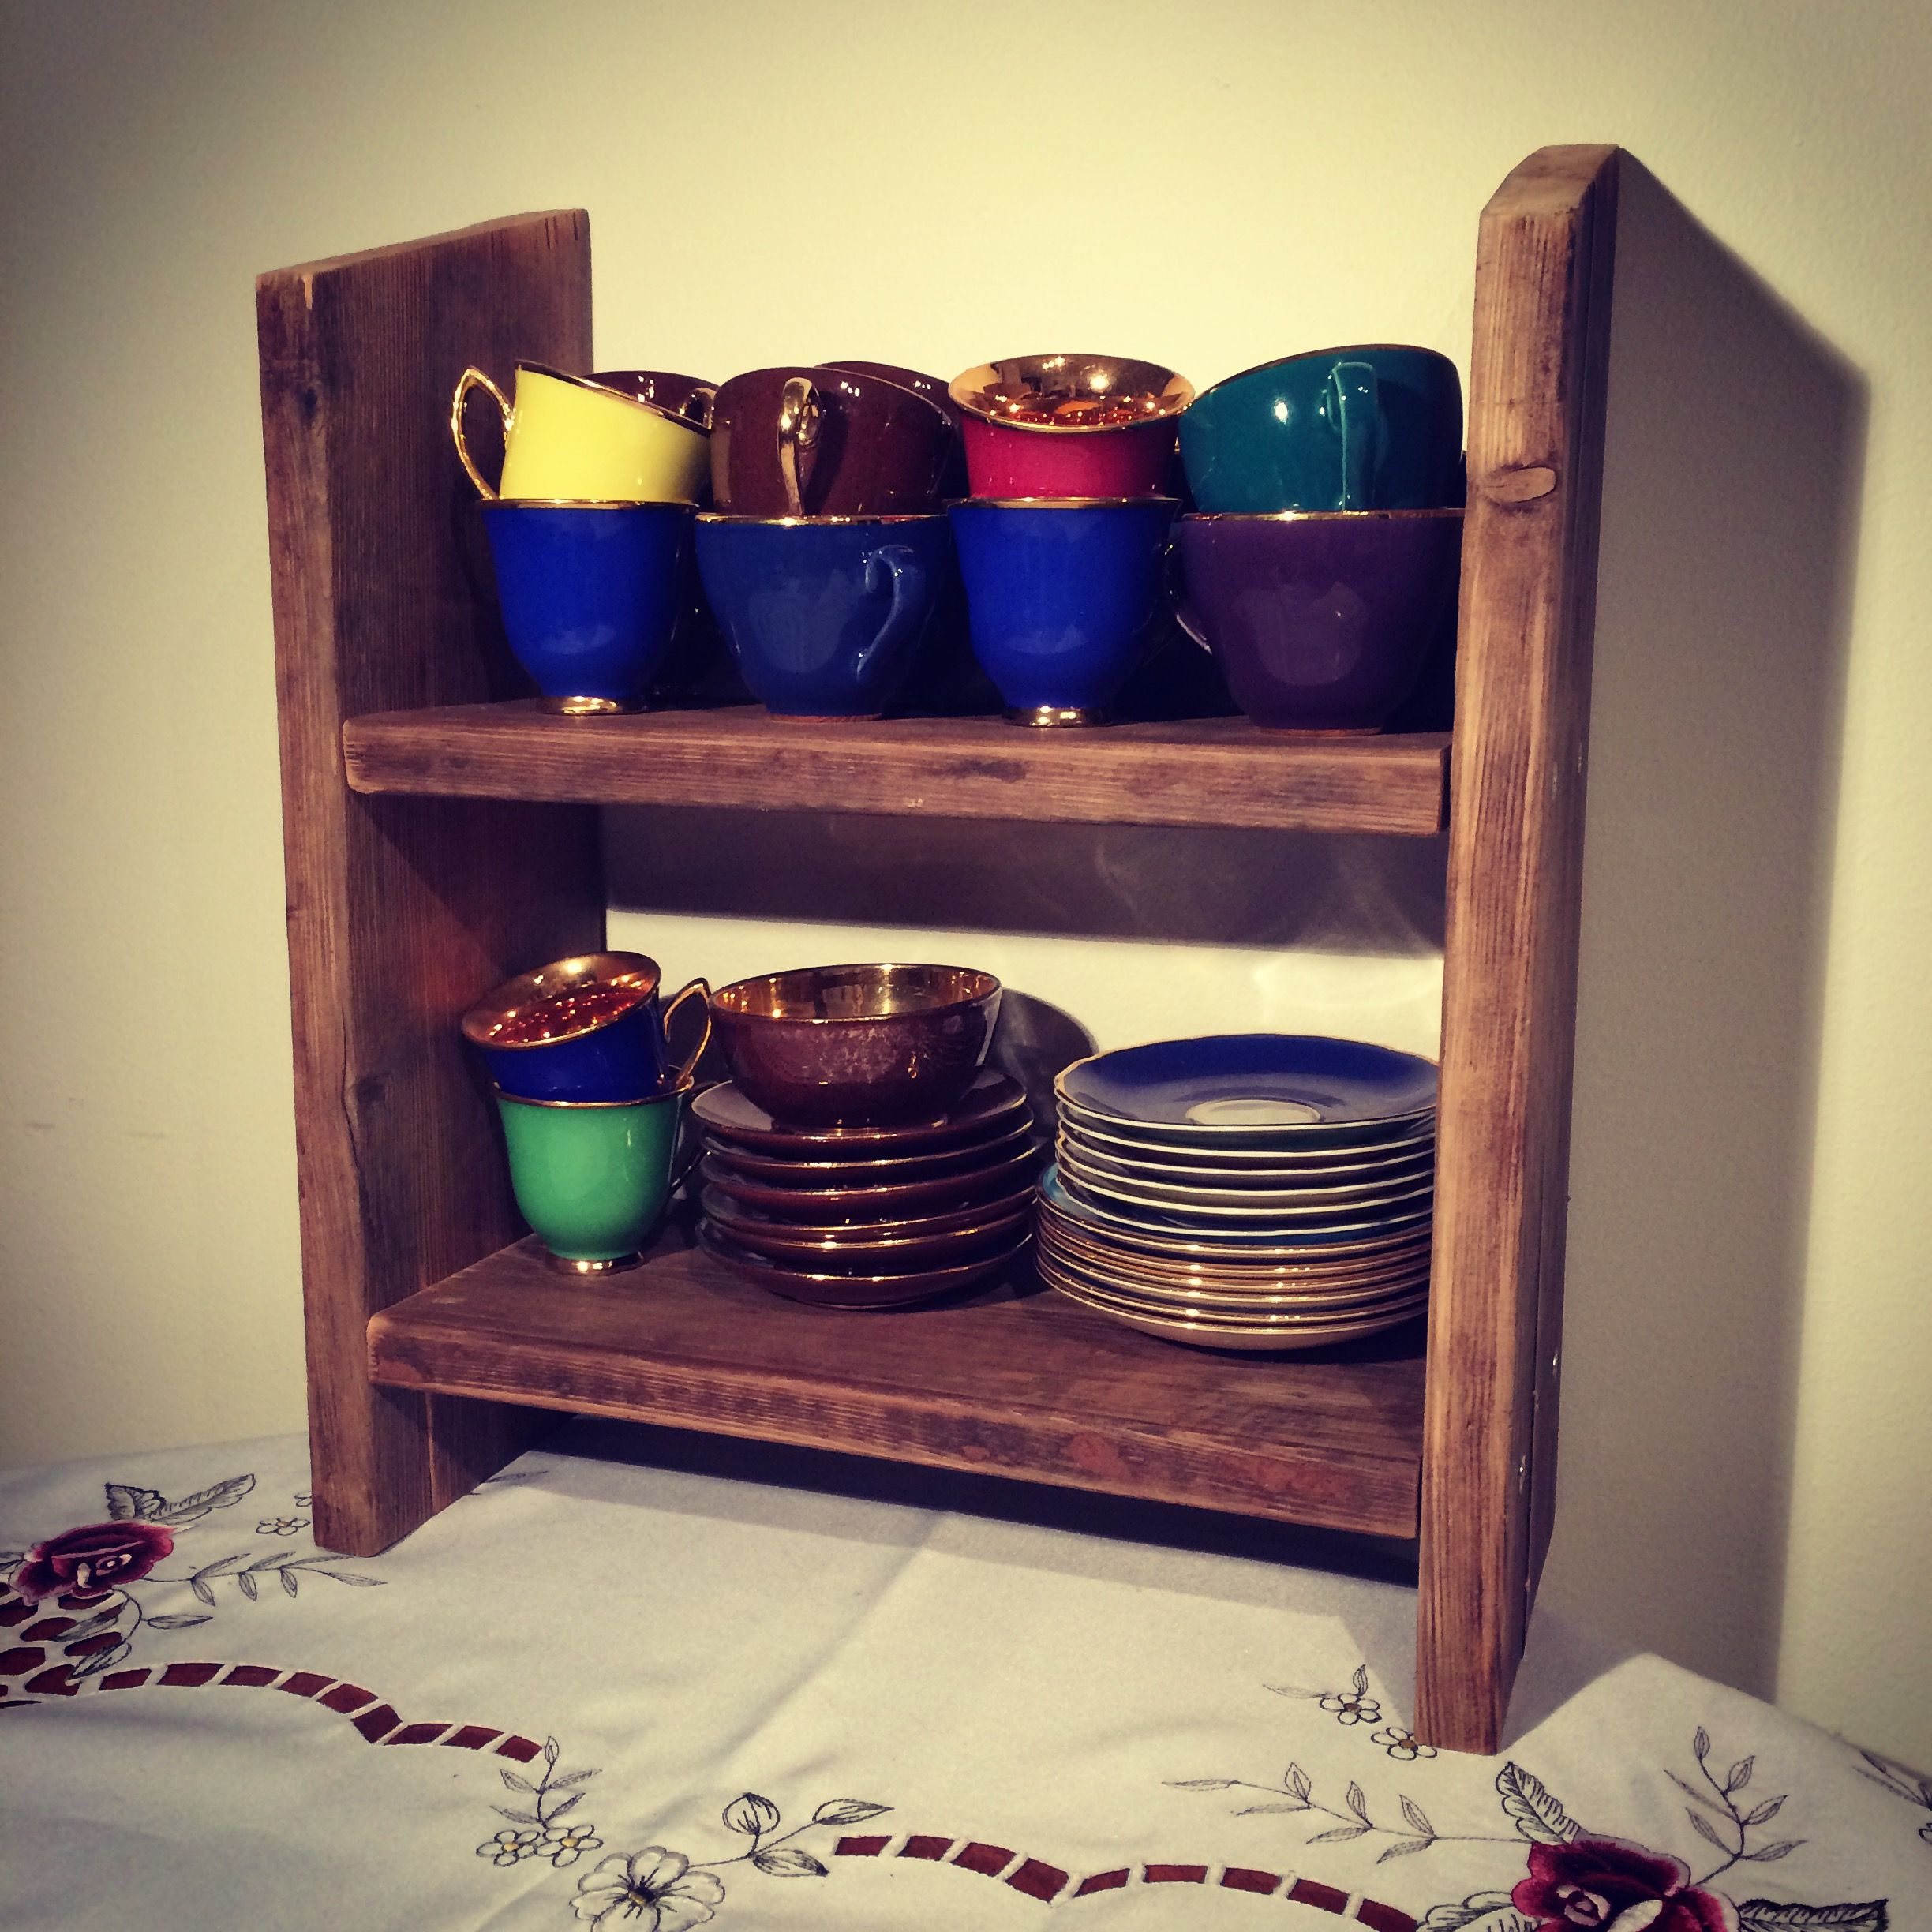 Shelves made from rescued wood